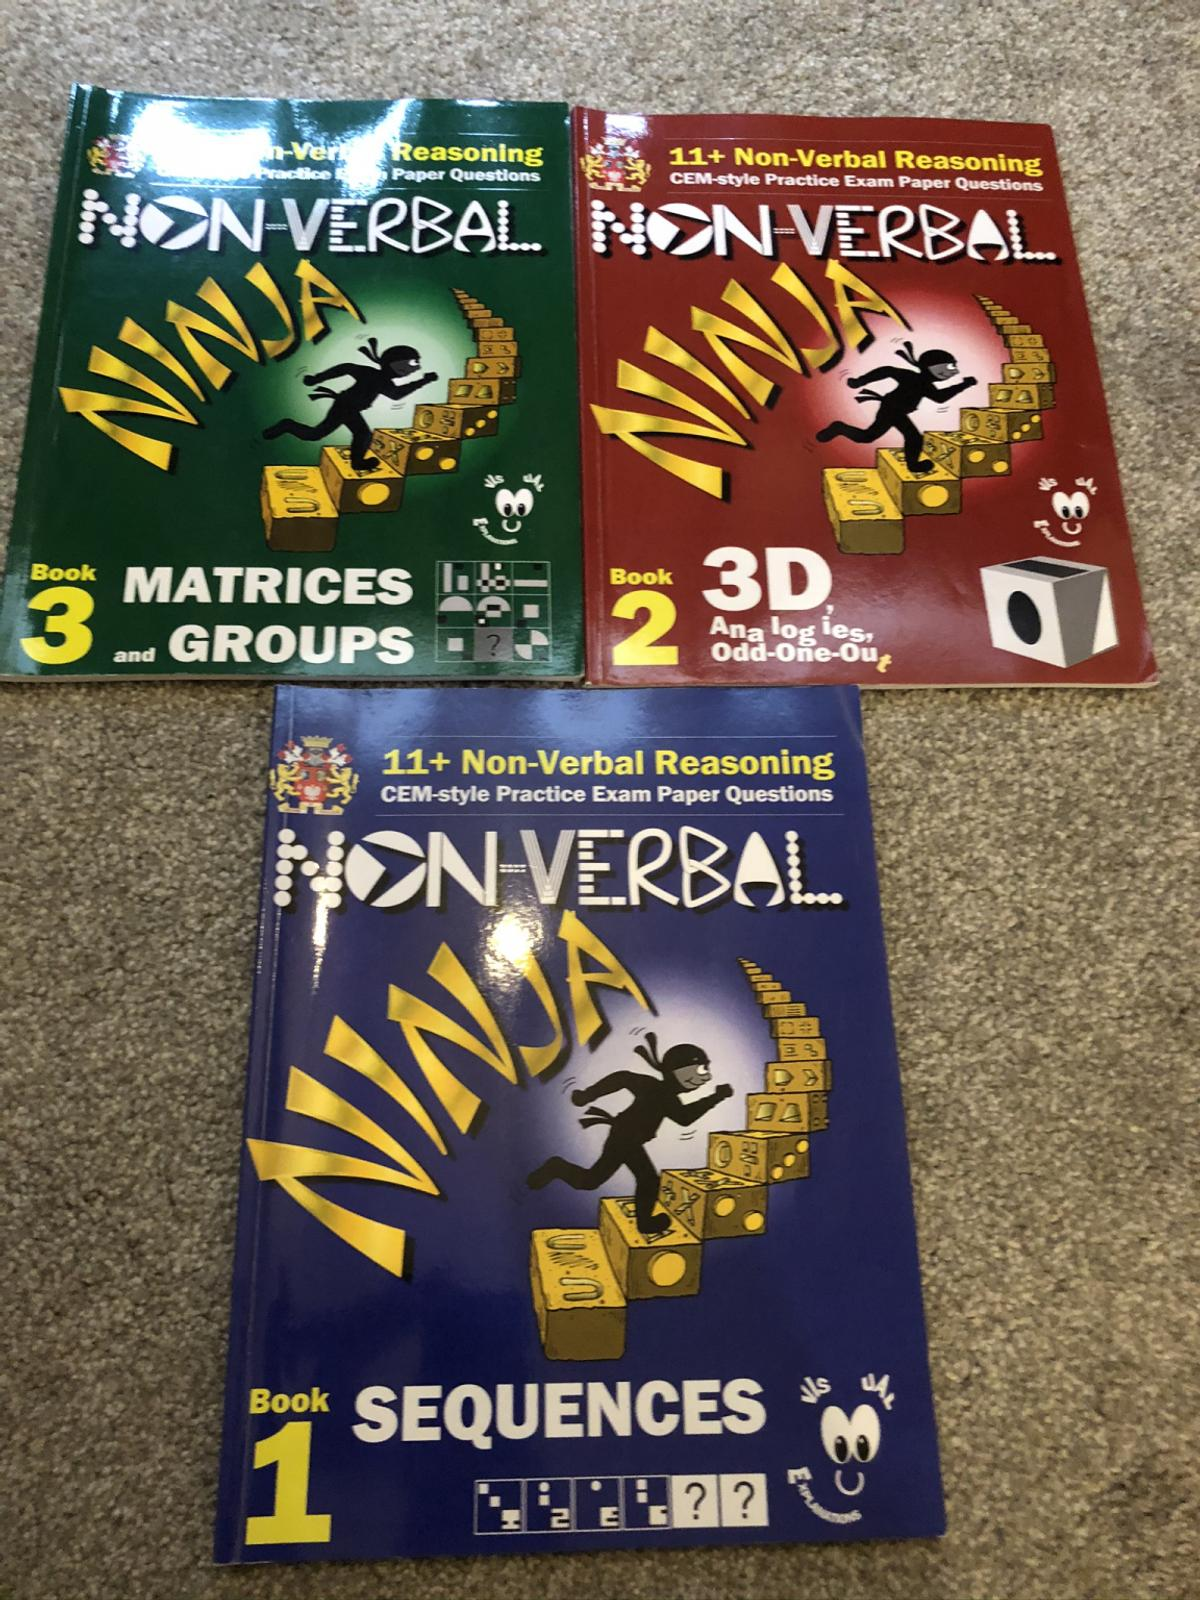 3 x Non verbal books Matrices and Groups, Sequences, 3D(Eureka Eleven plus) Excellent condition - new Comes from a smoke free pet free home